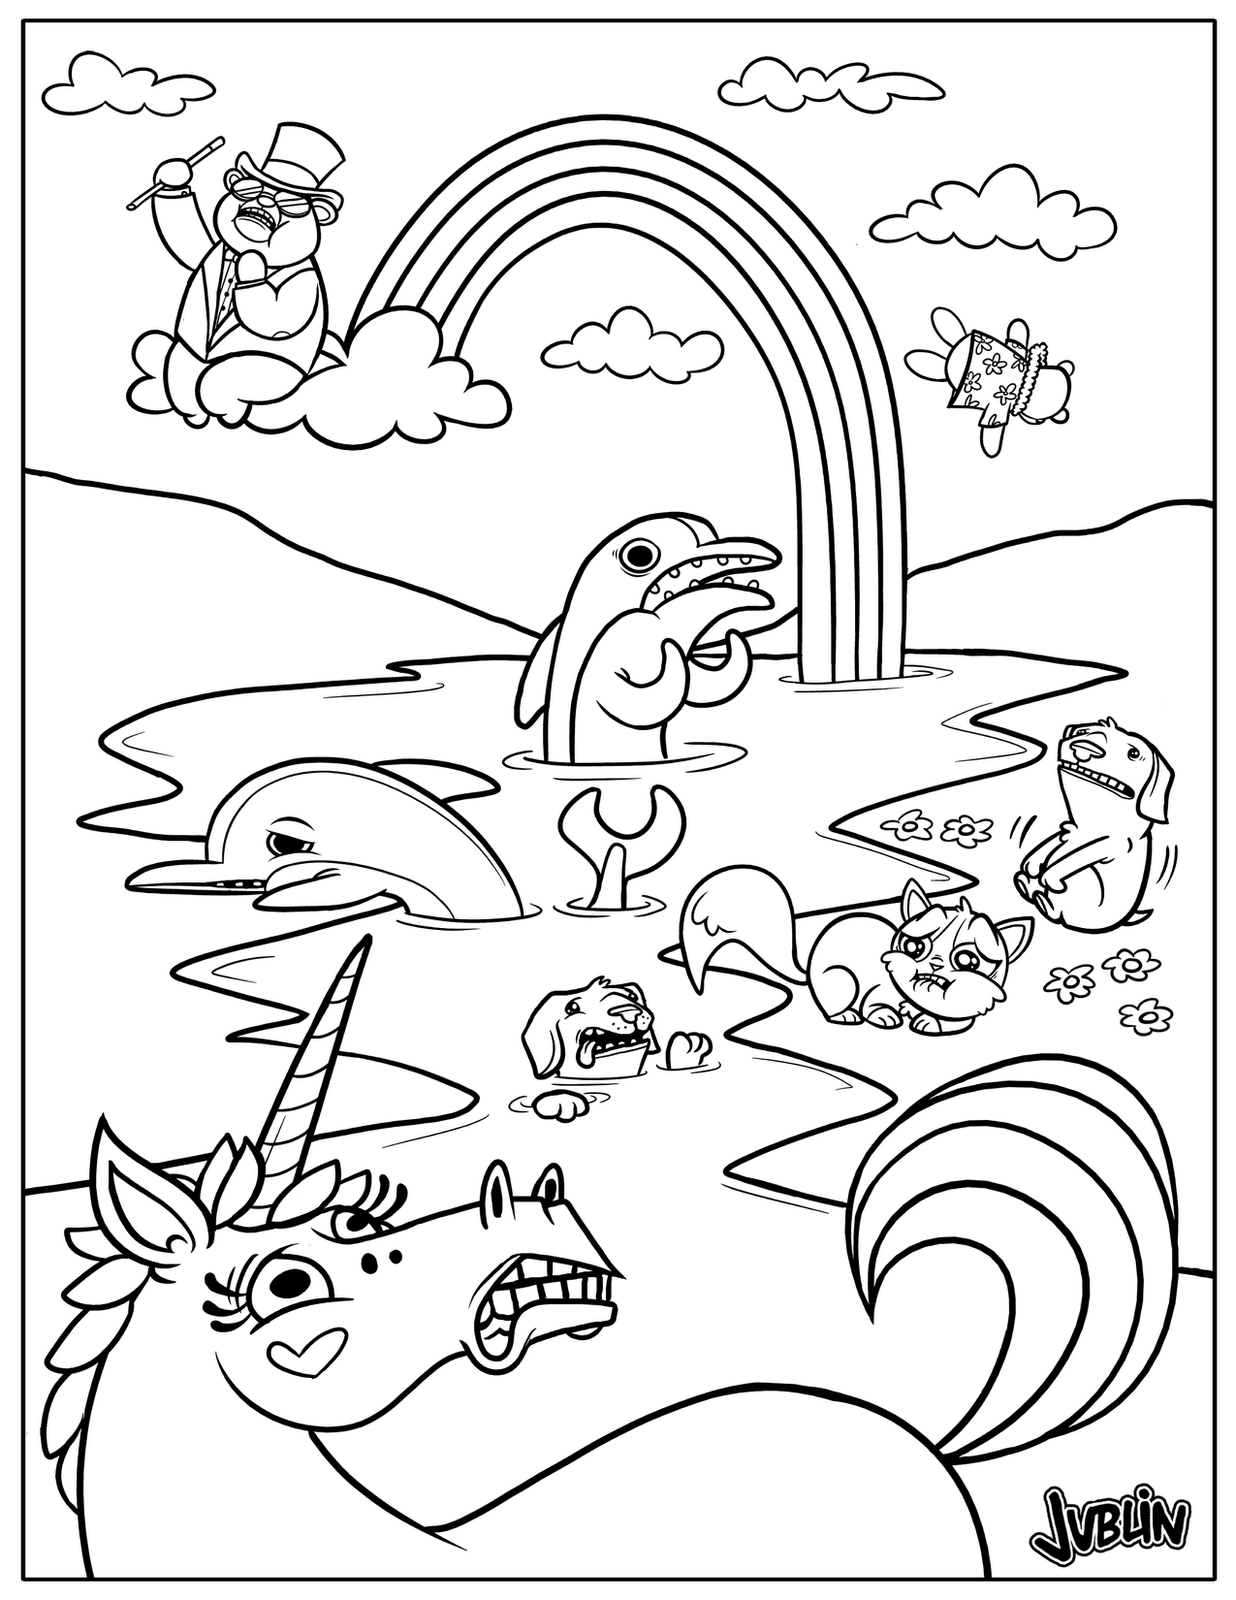 Super punch oil spill coloring page craftscoloring pages